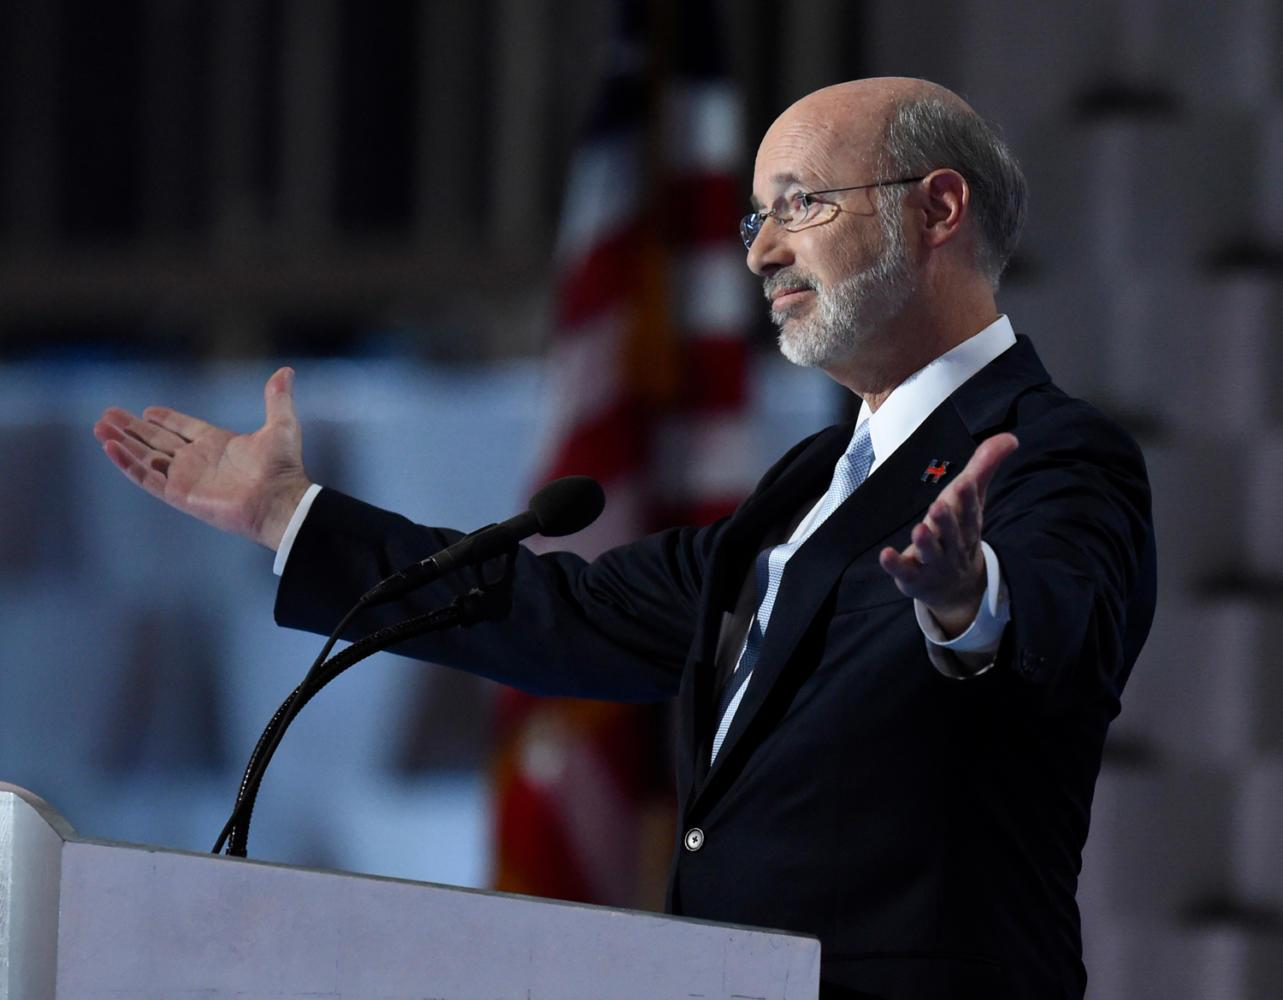 Pennsylvania Gov. Tom Wolf speaks during the last day of the Democratic National Convention at the Wells Fargo Center in Philadelphia on July 28, 2016. (Clem Murray/Philadelphia Inquirer/TNS)